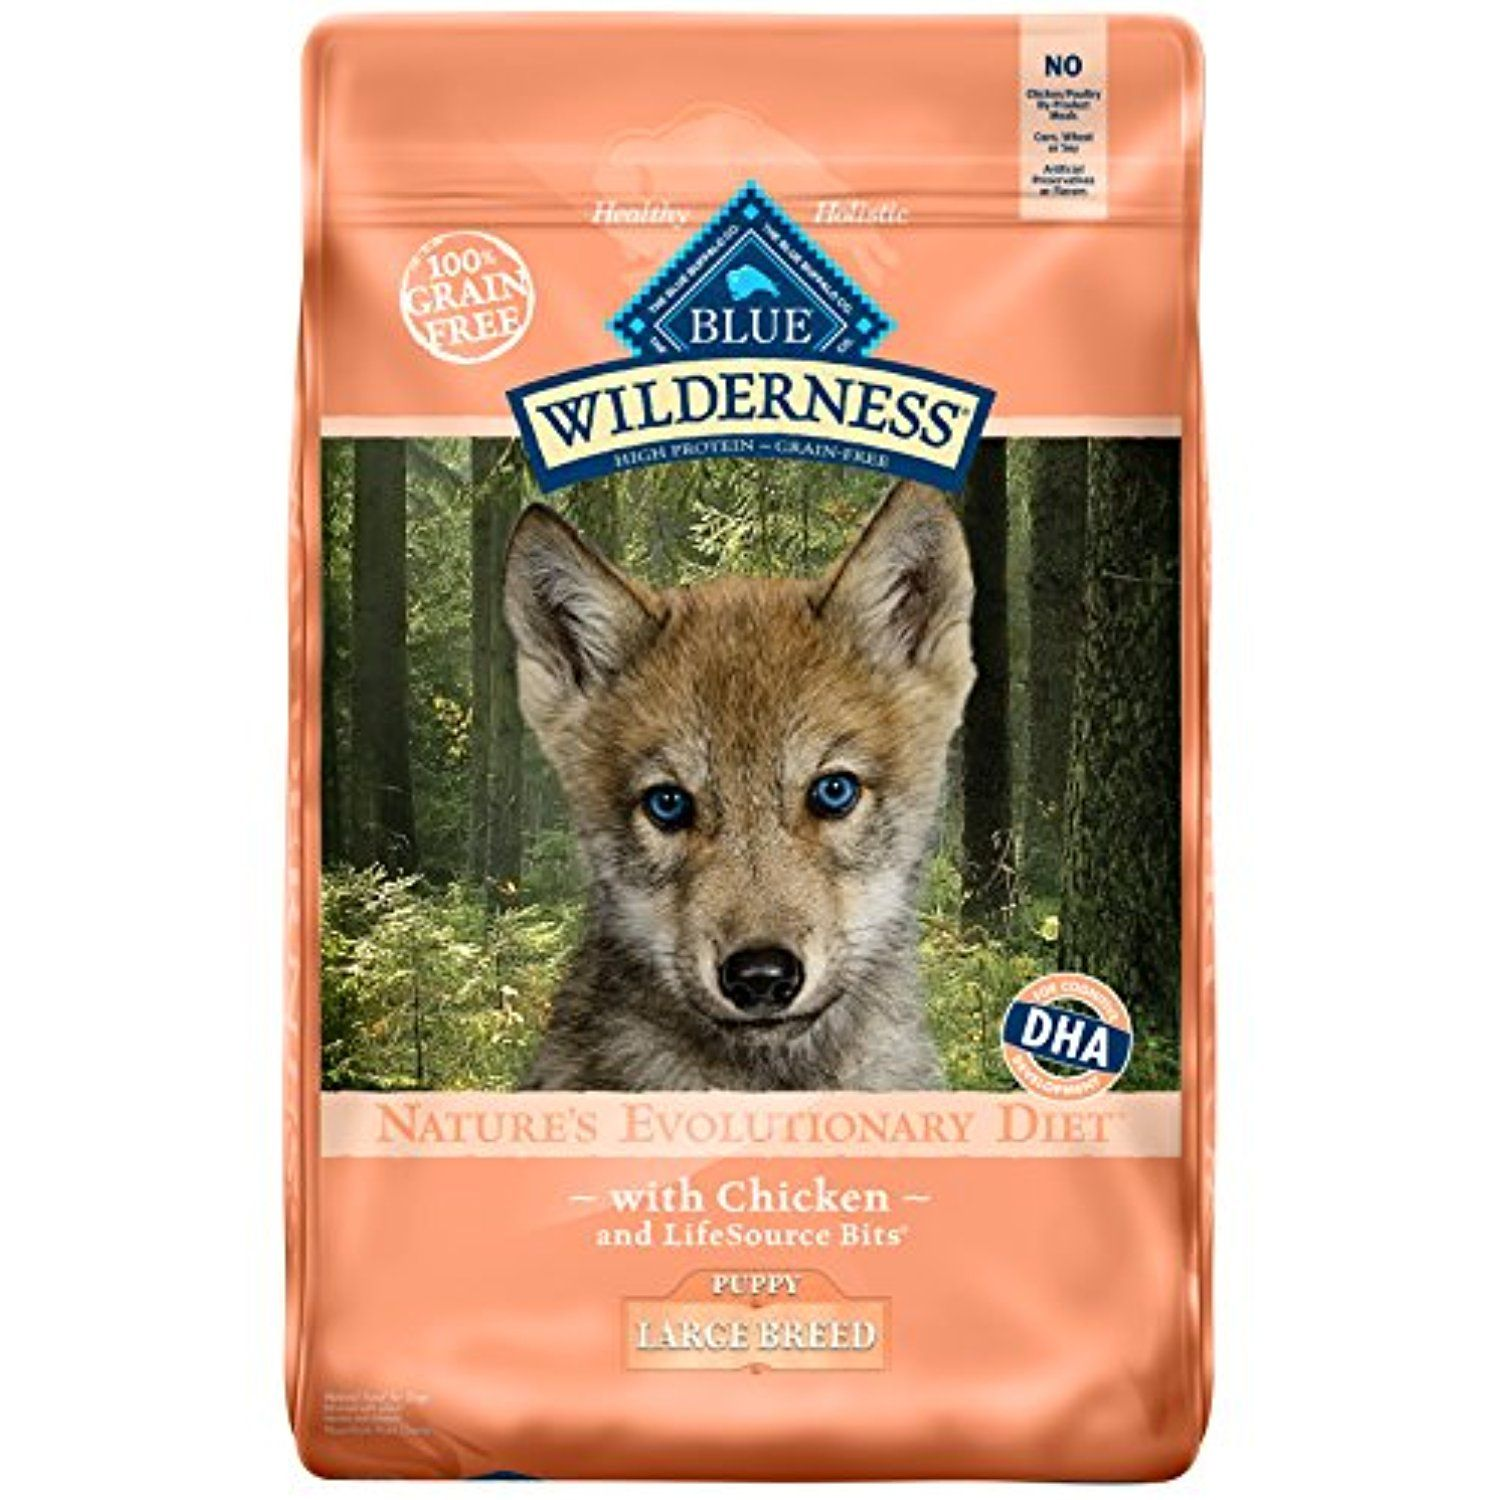 Blue Wilderness Puppy Large Breed Grain Free Chicken Dry Dog Food